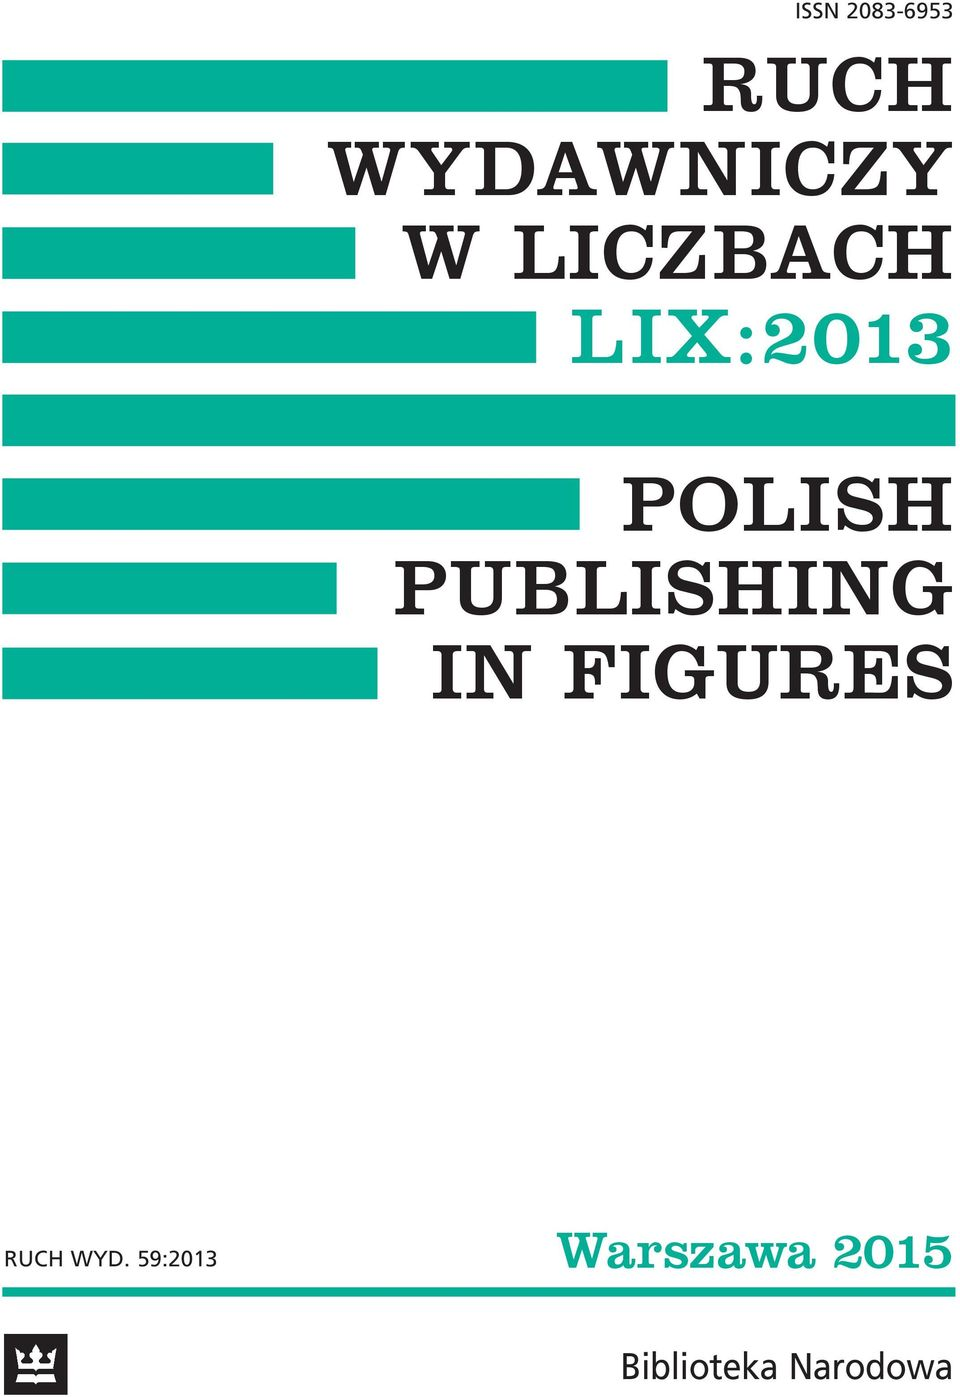 PUBLISHING IN FIGURES RUCH WYD.